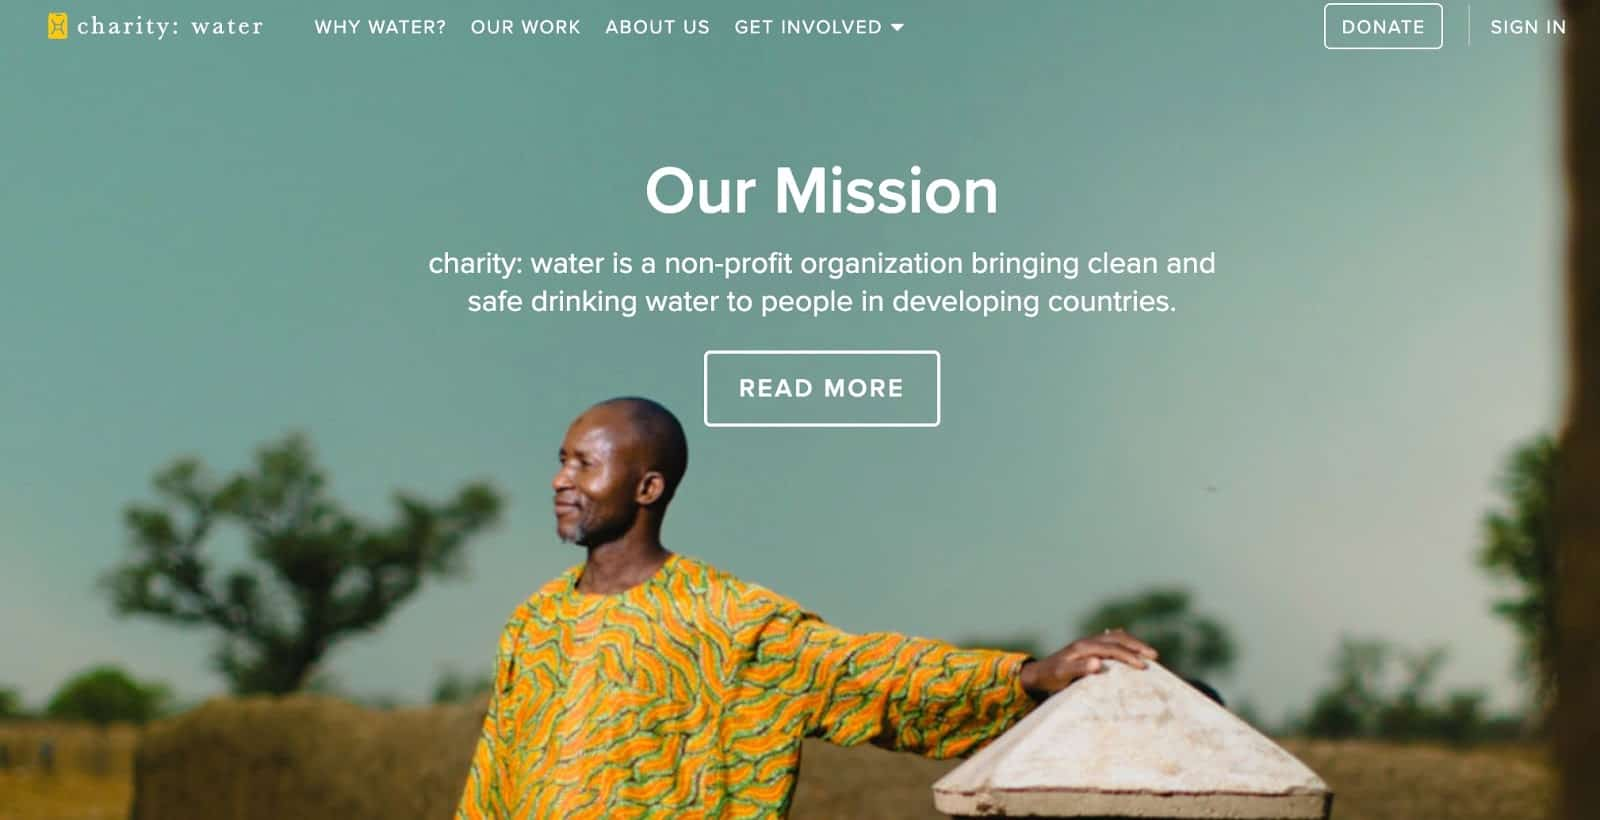 About-Us-charity_-water-2021-04-18-at-8.52.59-PM